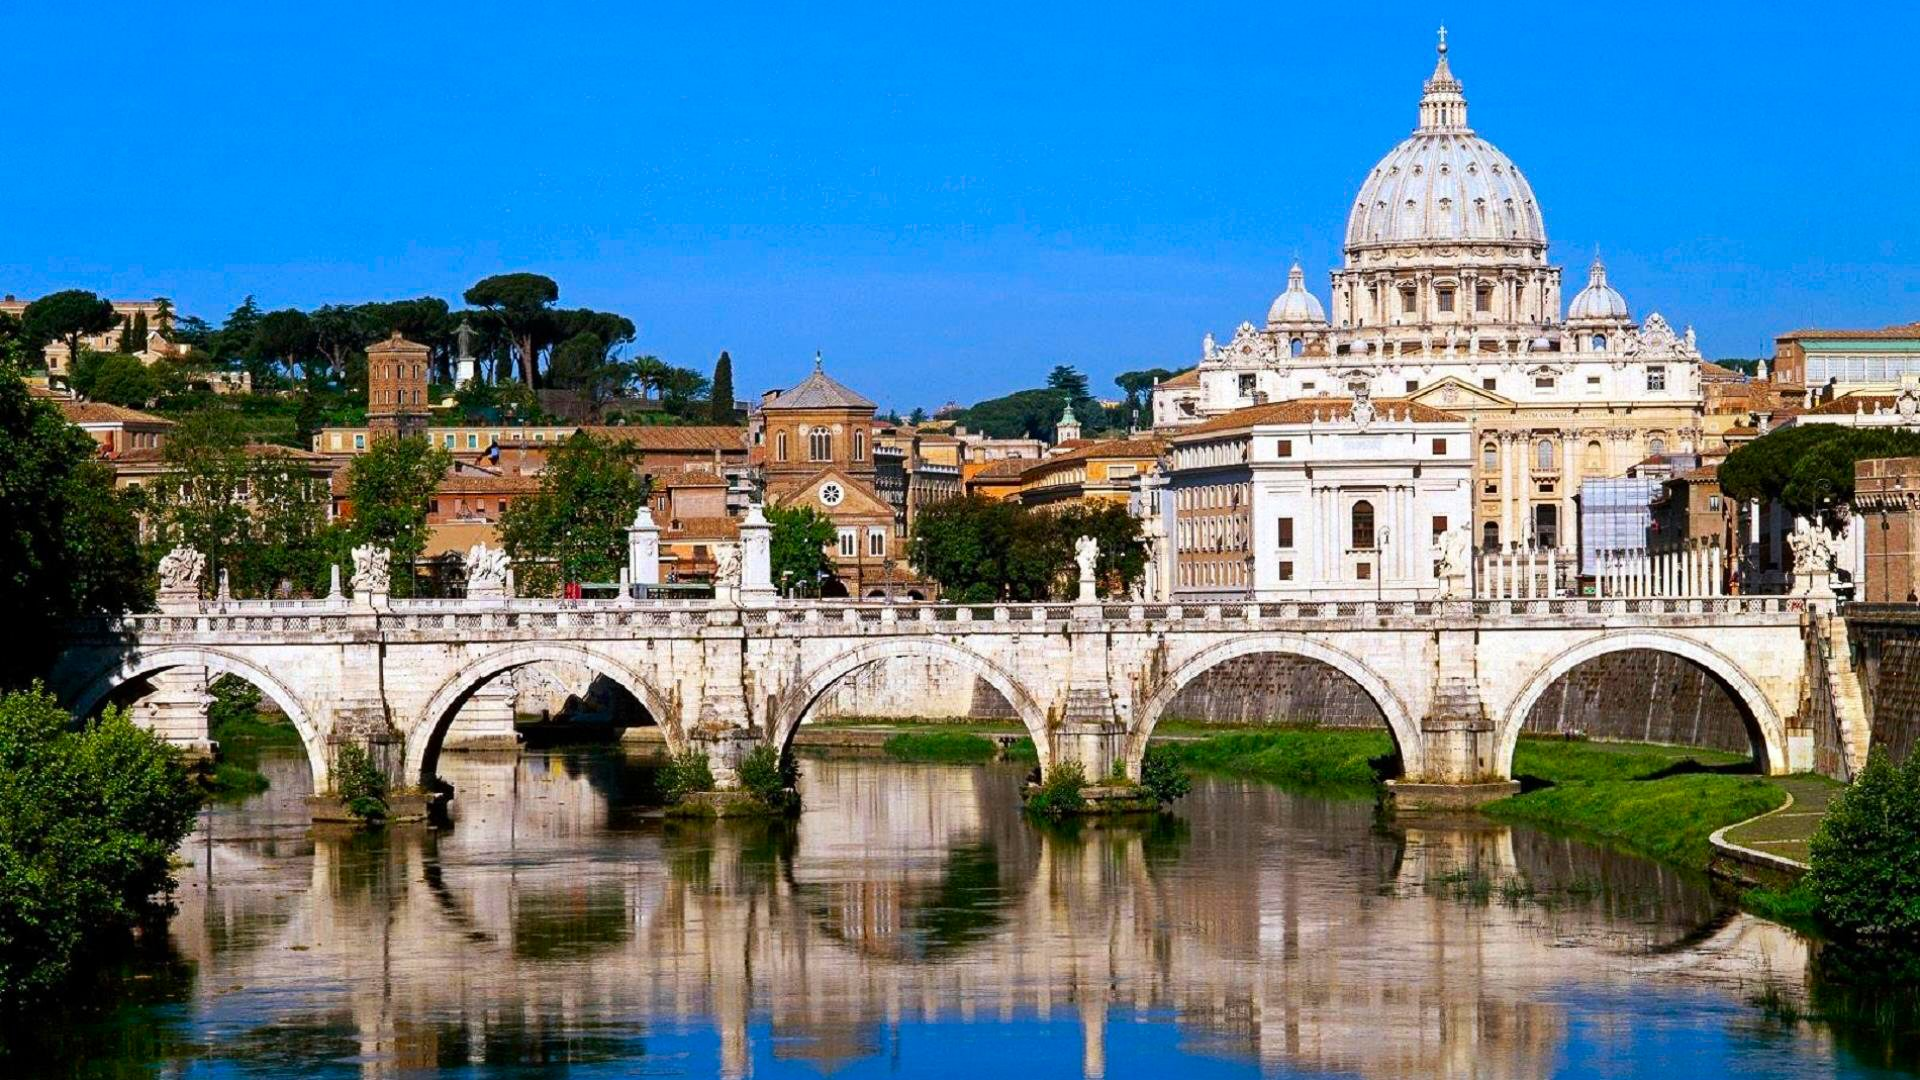 Vatican City Bridge and St.Peter's Basilica